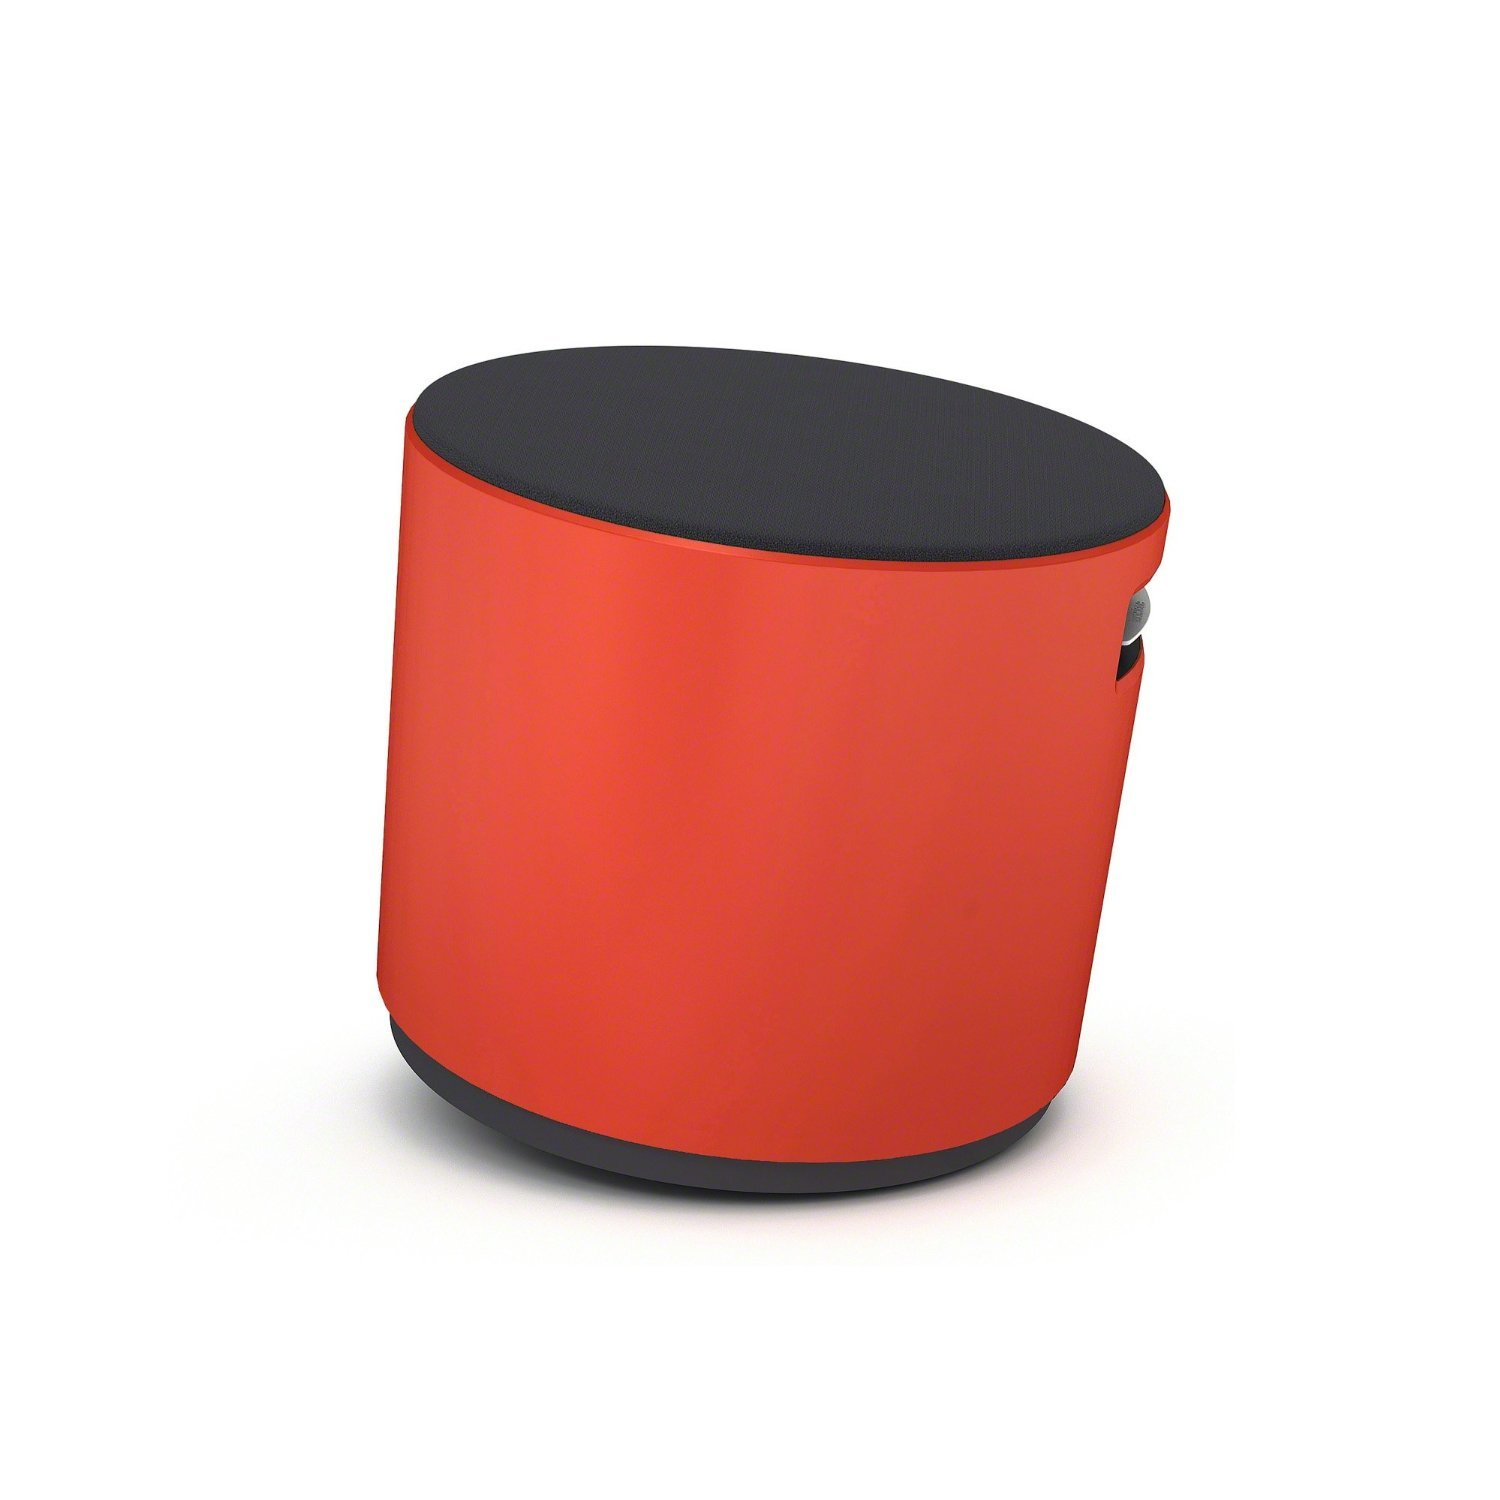 Superieur Amazon.com: Turnstone Buoy Stool: Chile Base   Tornado Buzz2 Upholstery:  Kitchen U0026 Dining